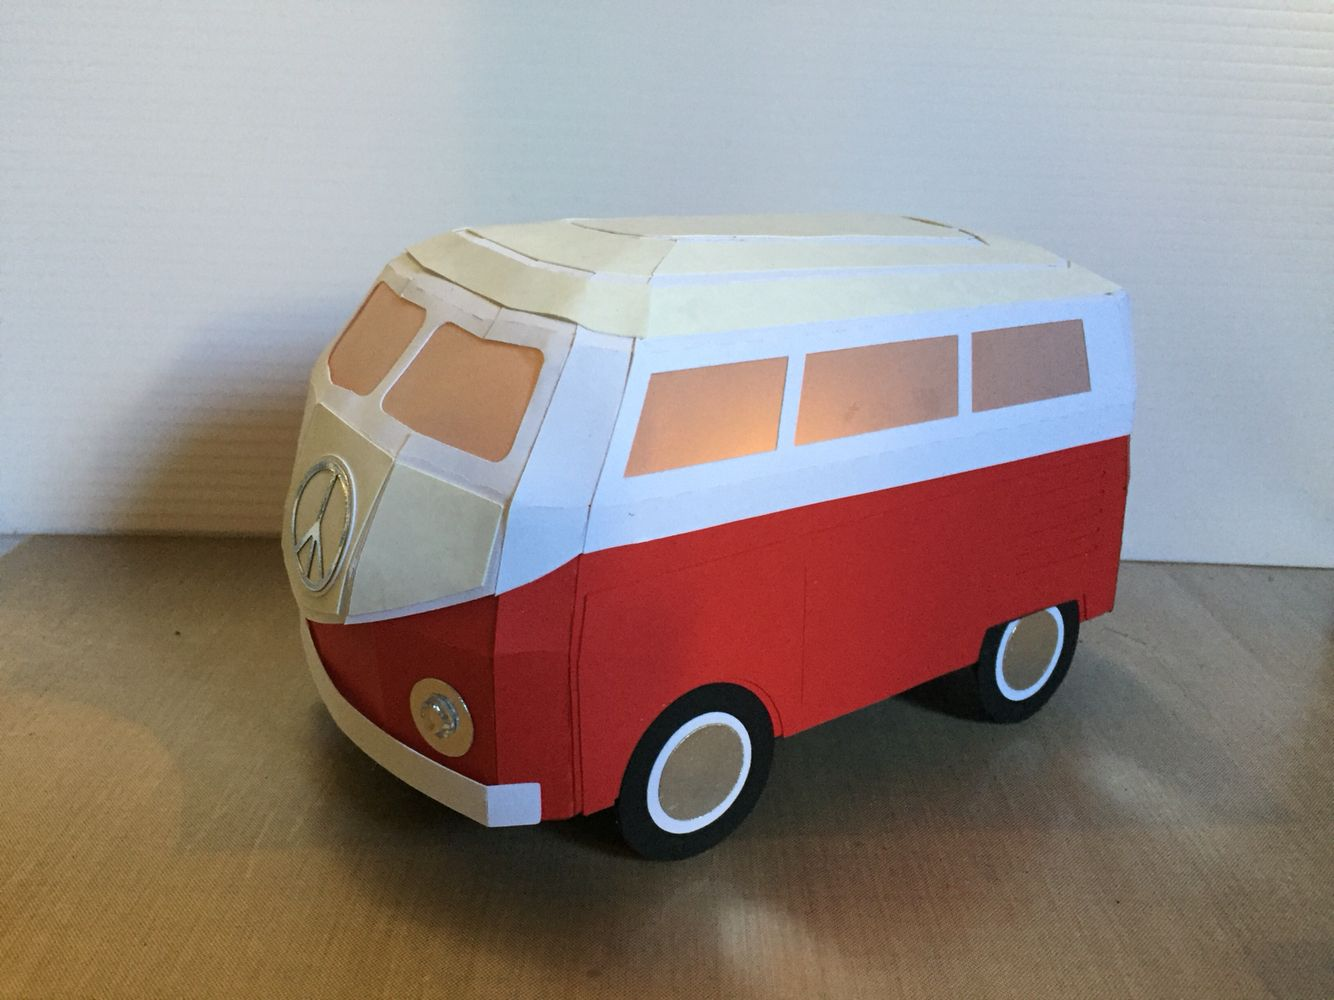 German Bus From Svgcuts Done As 1967 Vw Bus Juguetes De Madera Juguetes Tarjetas